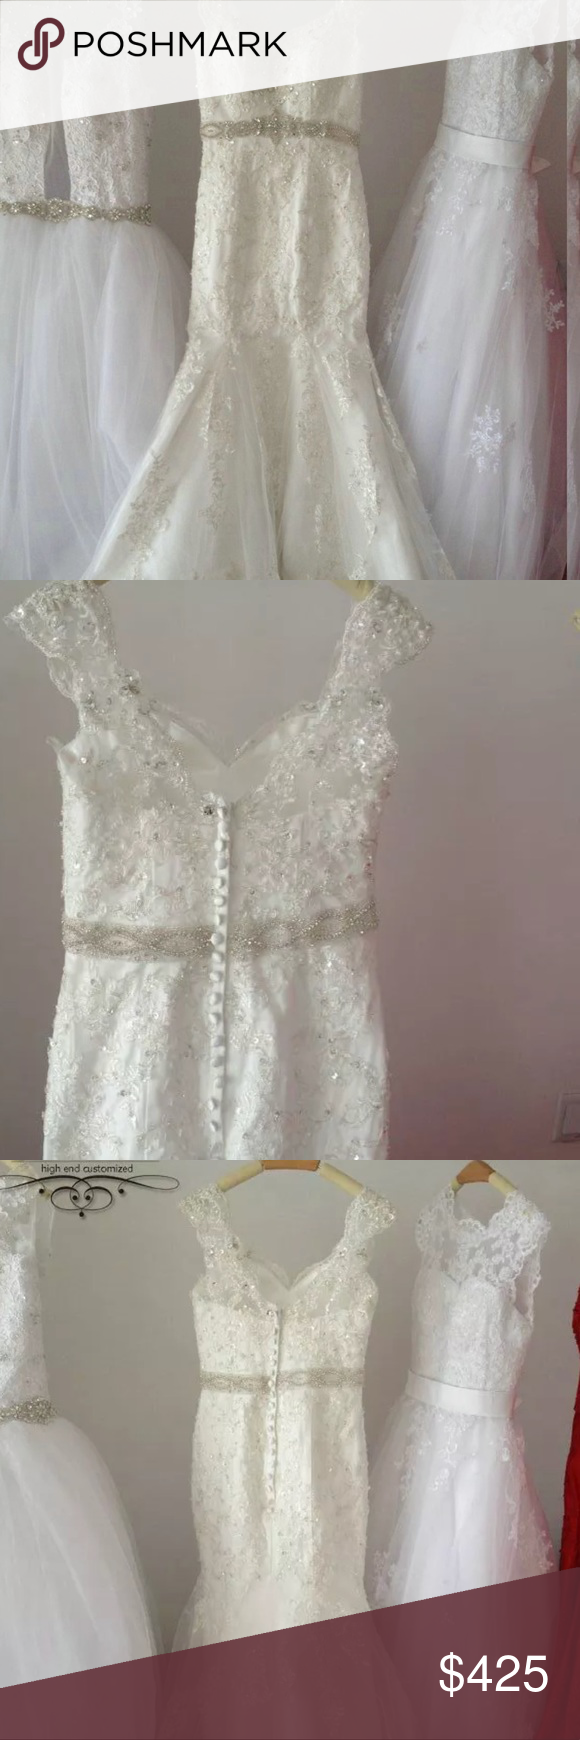 Custom made wedding dress  Custom Made Wedding Dress Make it Your Own Bonheur Bridal offers